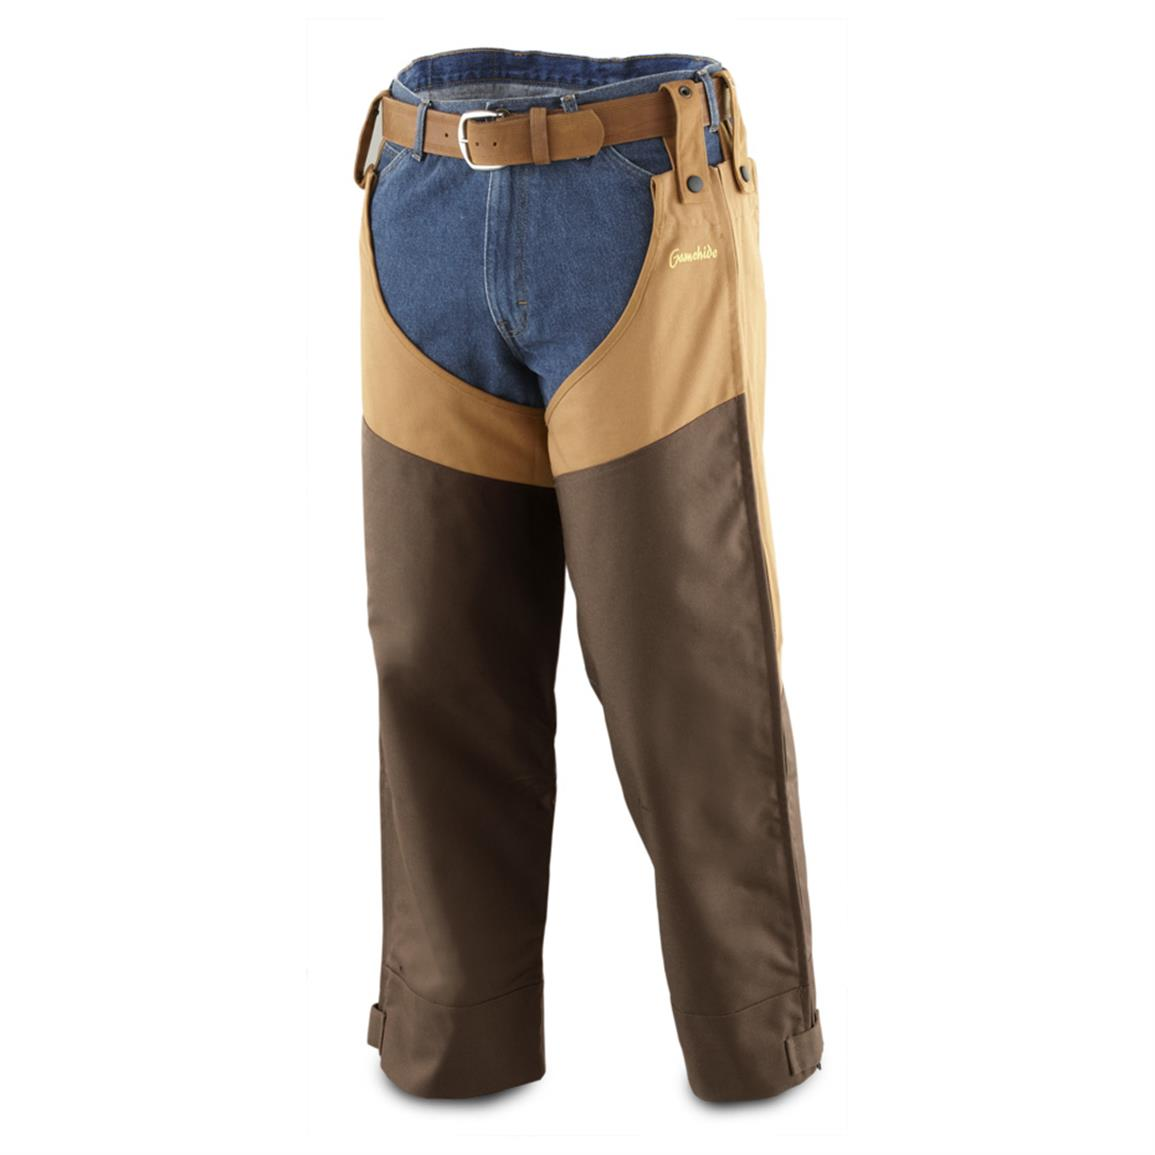 Gamehide® Briar-Proof Chaps, Marsh Brown